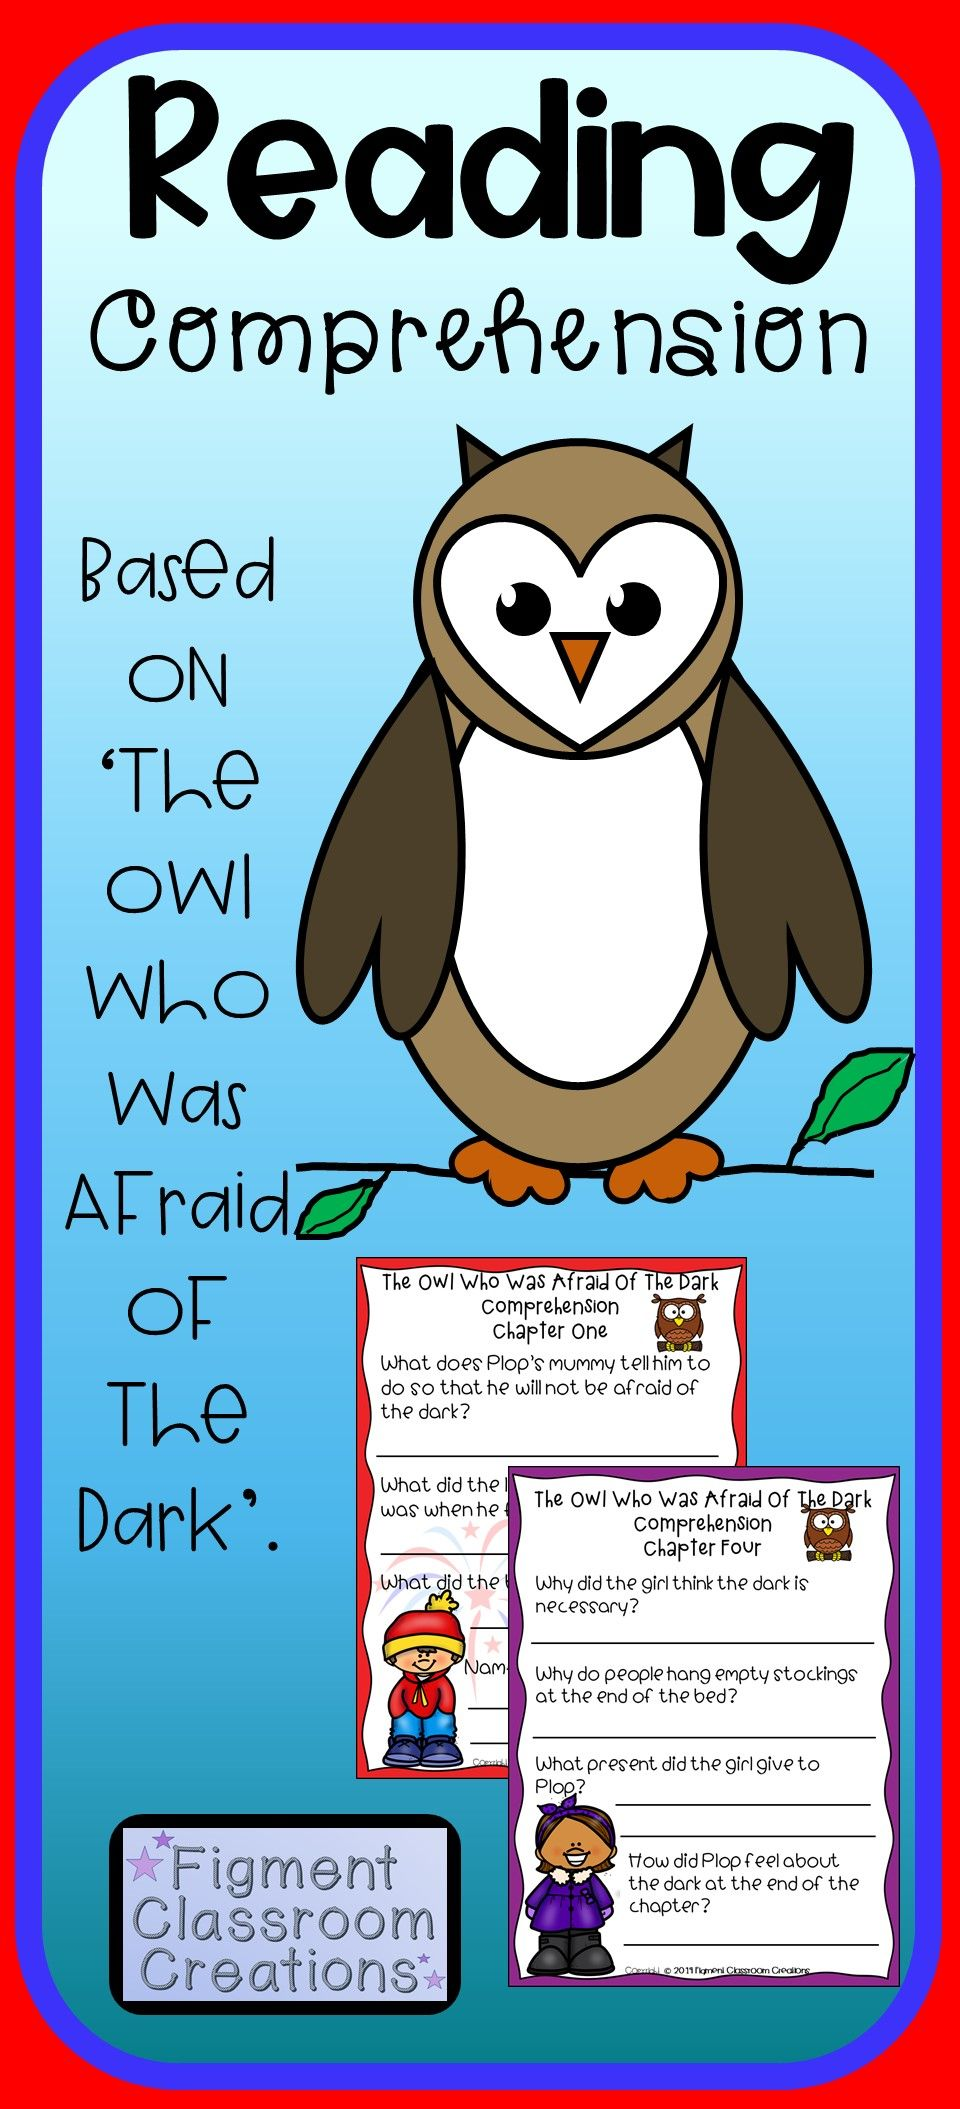 Reading Comprehension Connected To The Owl Who Was Afraid Of The Dark Reading Comprehension Questions Owl Who This Or That Questions [ 2109 x 960 Pixel ]